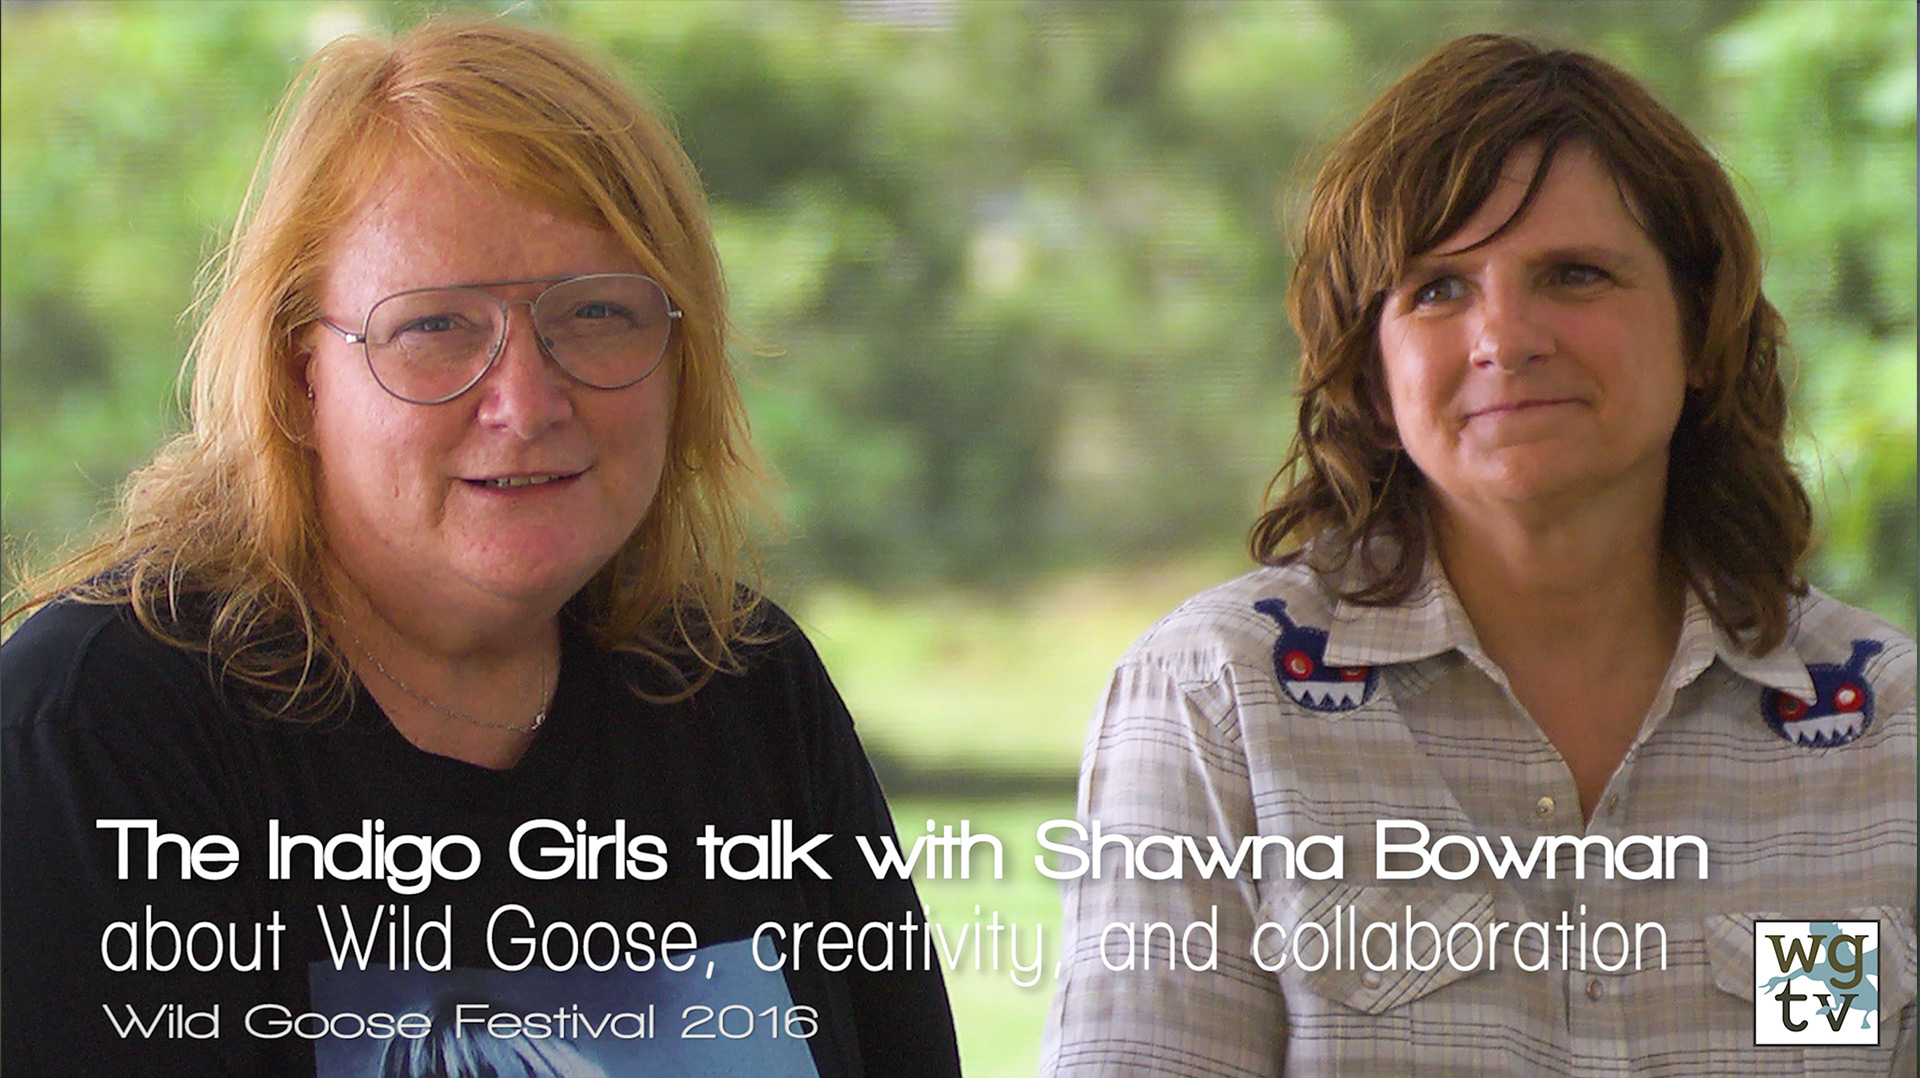 The Indigo Girls with Shawna Bowman